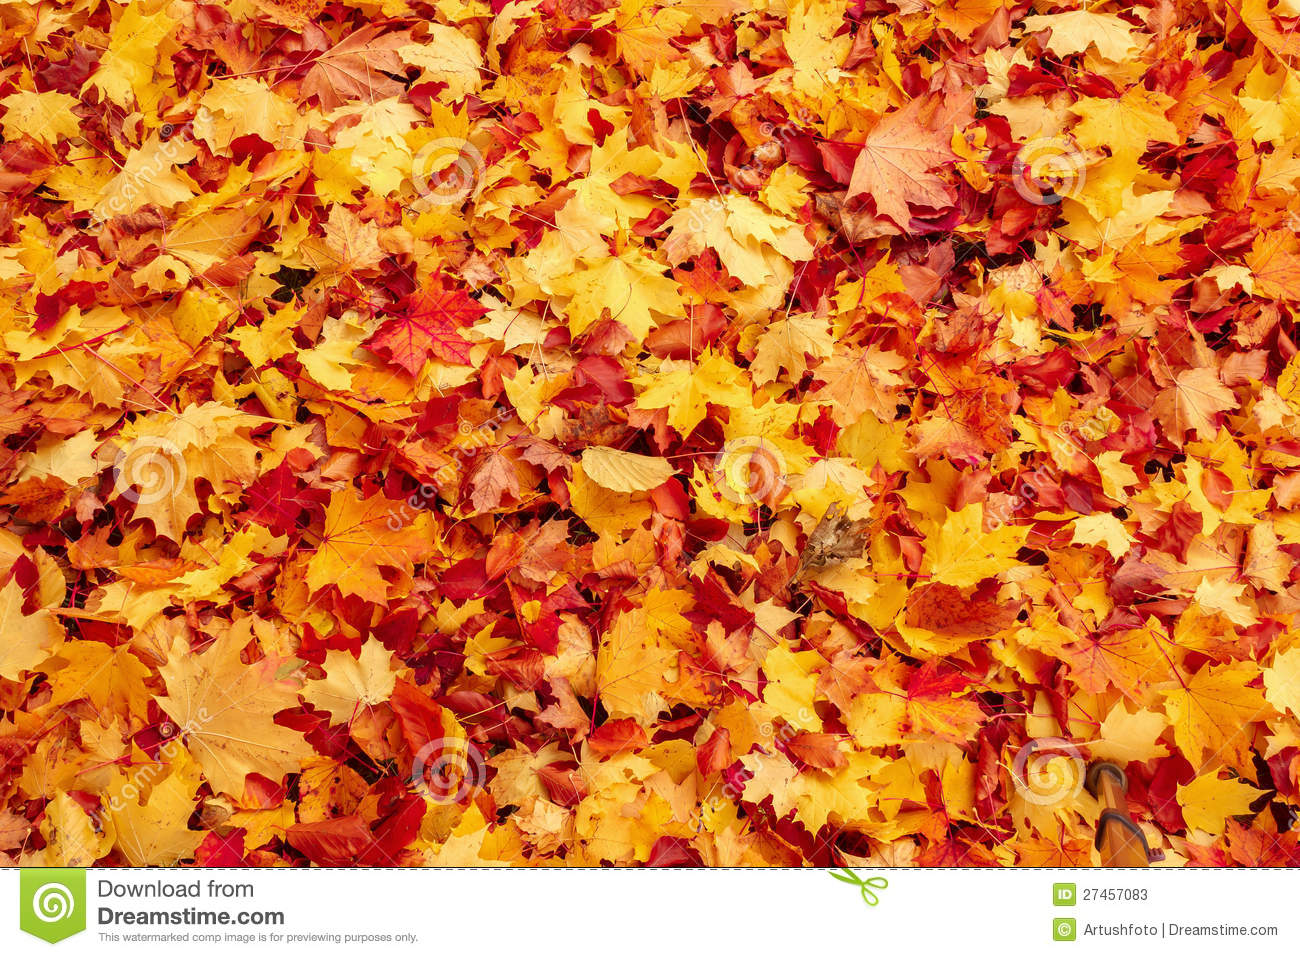 The Leaves On Ground Clip Art.